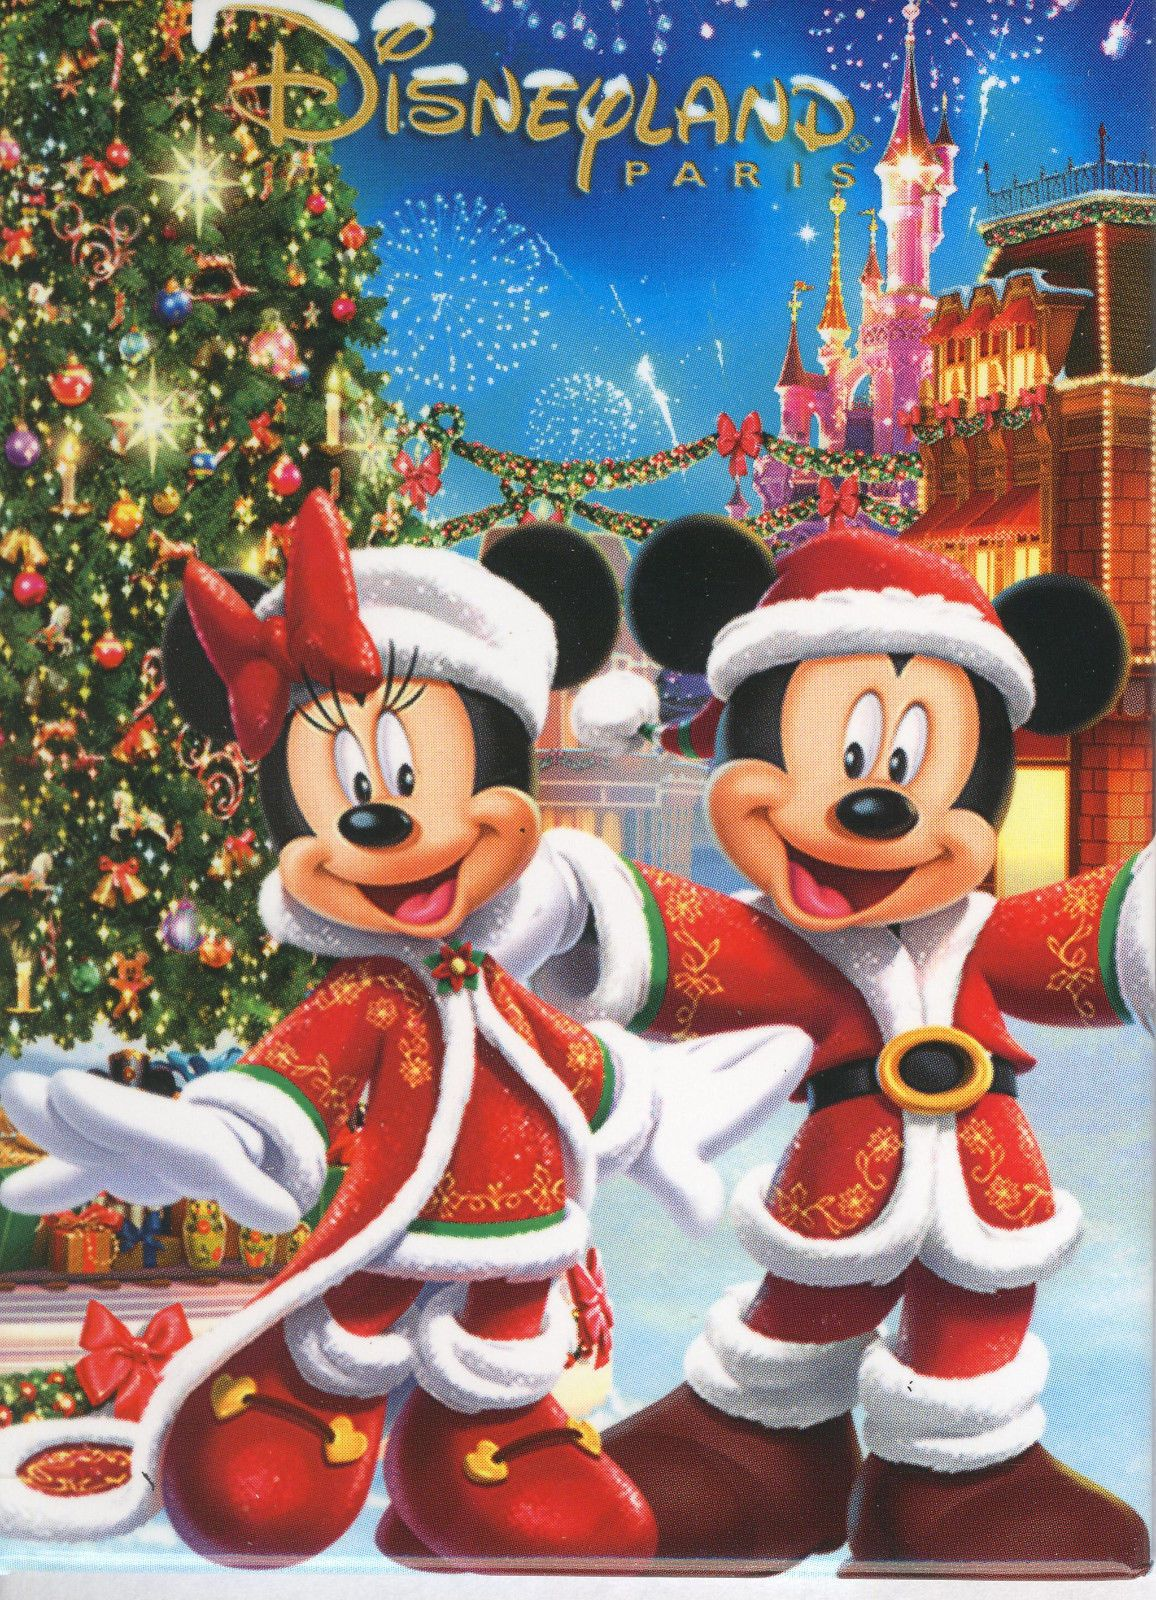 Christmas Minnie Mouse Disneyland.Christmas Disney Mickey Minnie Mouse Disneyland Paris